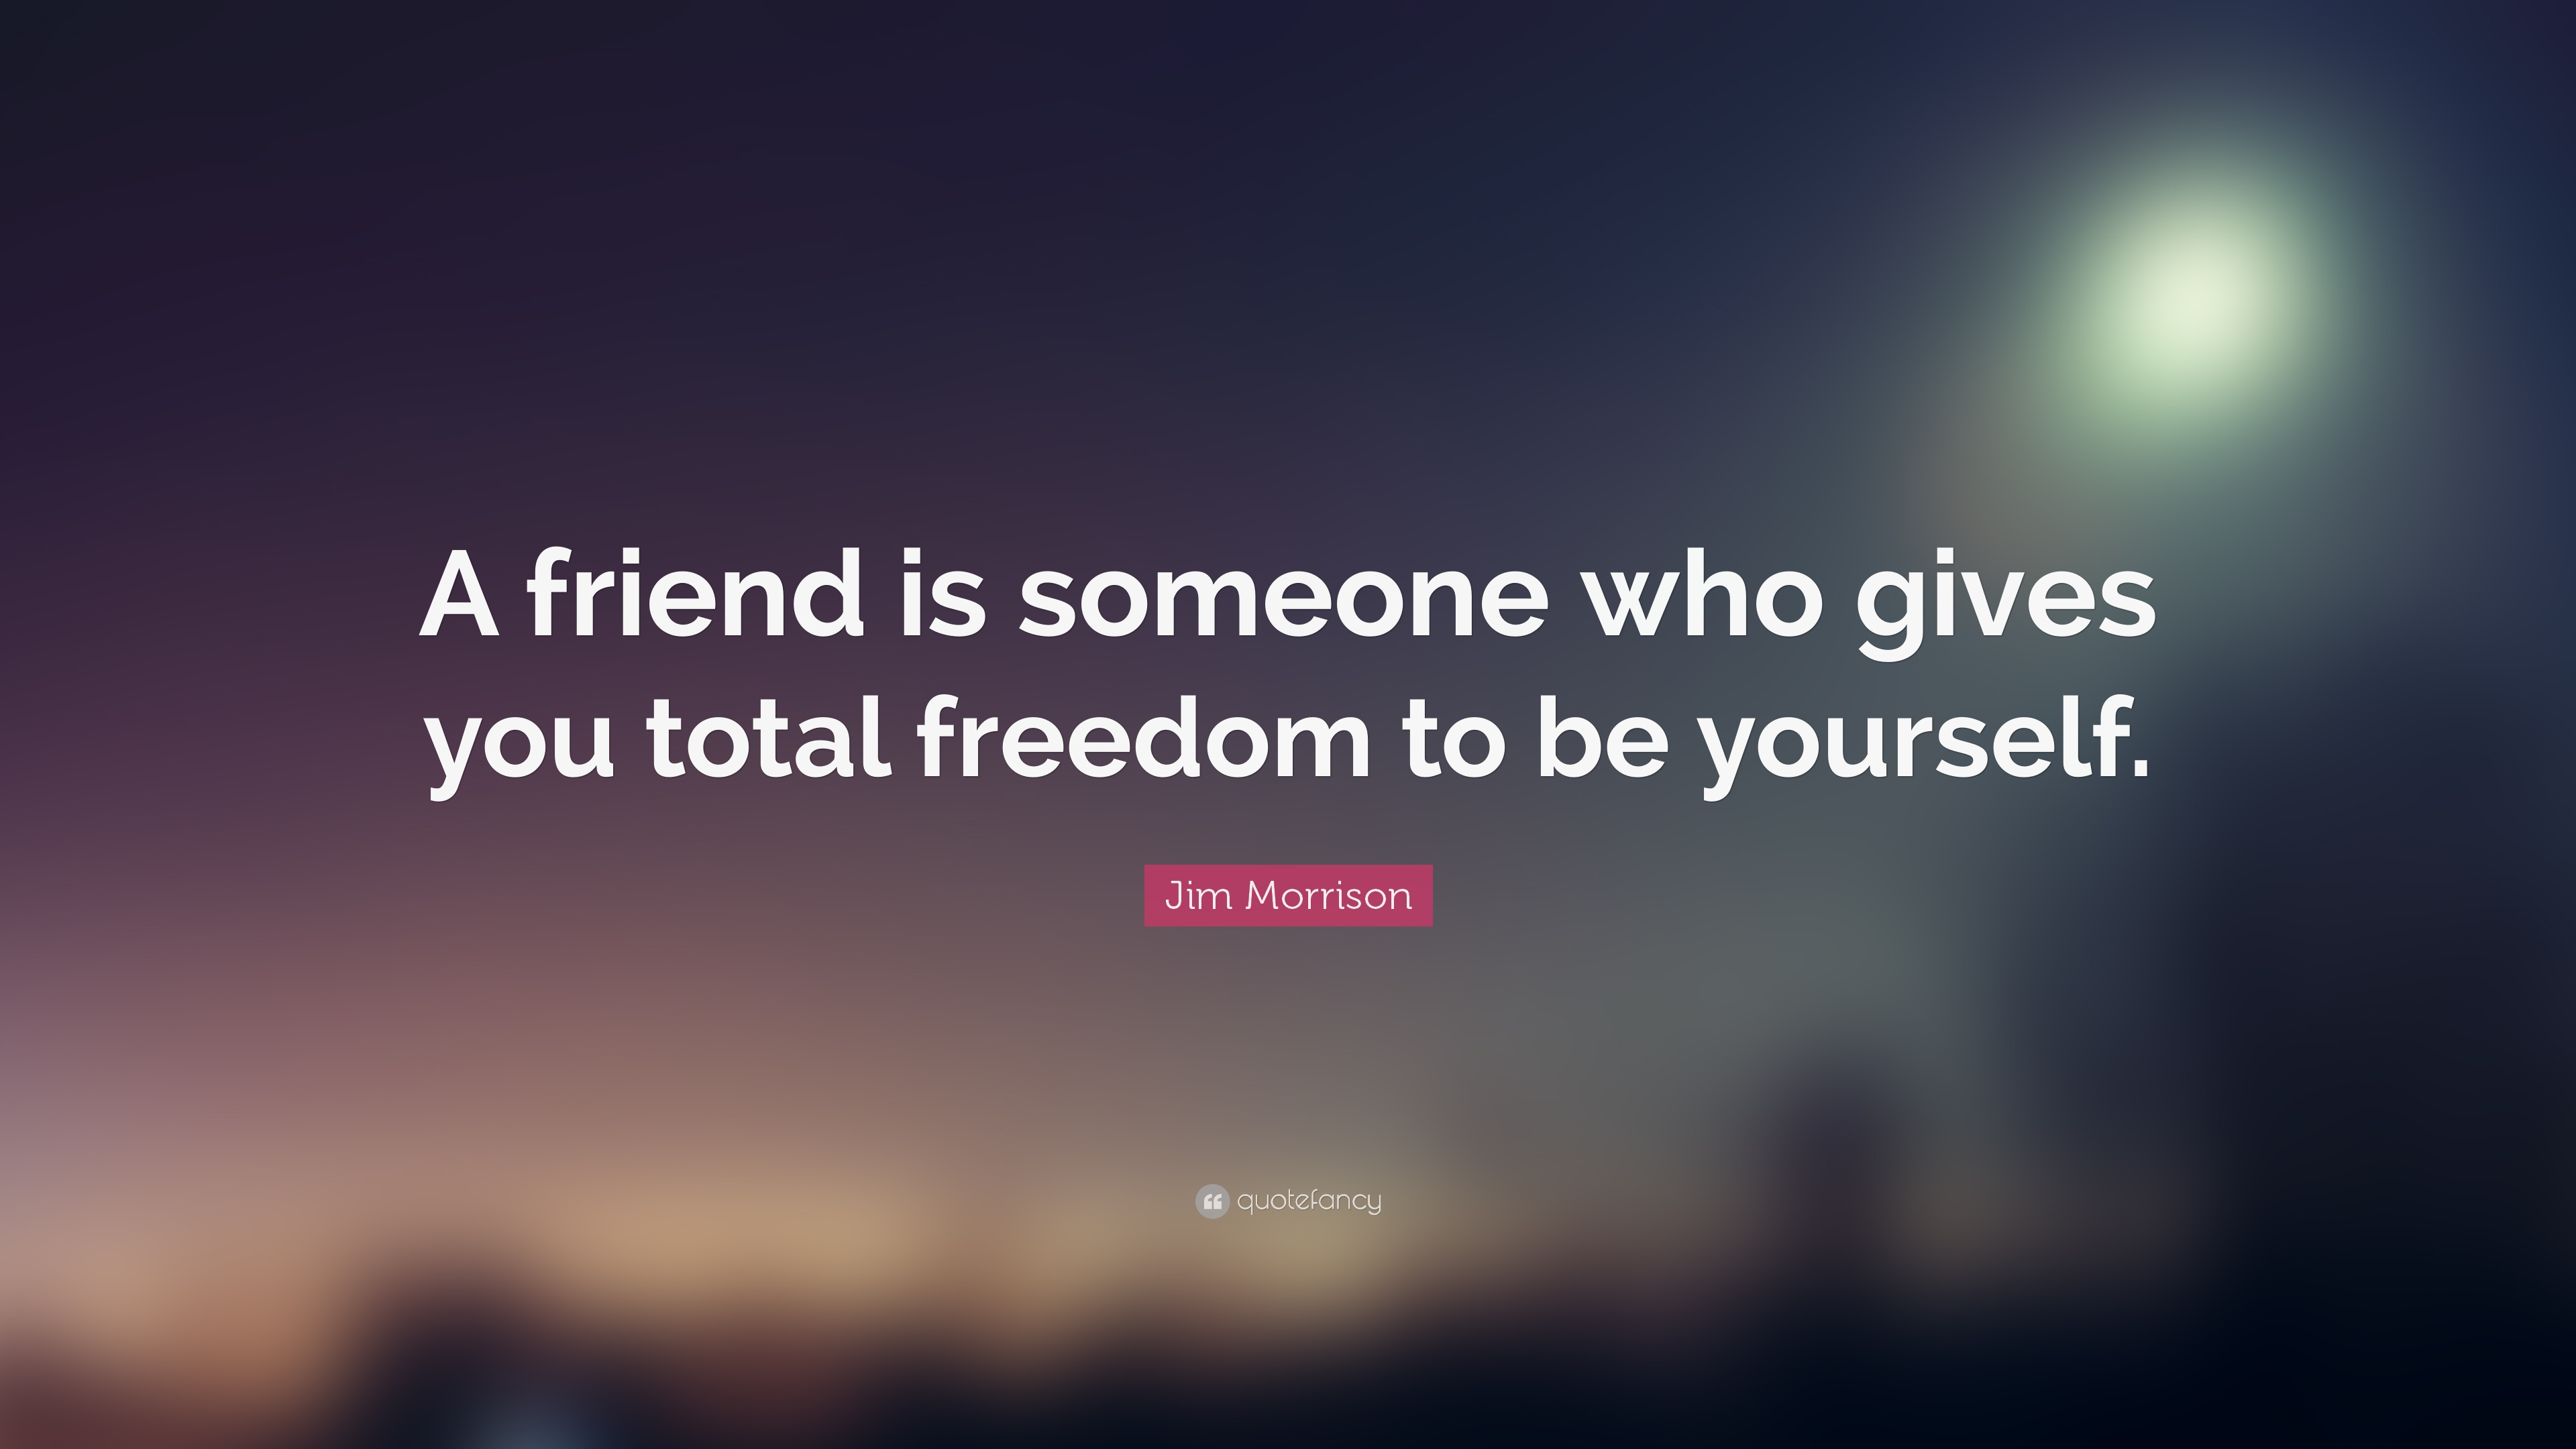 Jim Morrison Quote A Friend Is Someone Who Gives You Total Freedom To Be